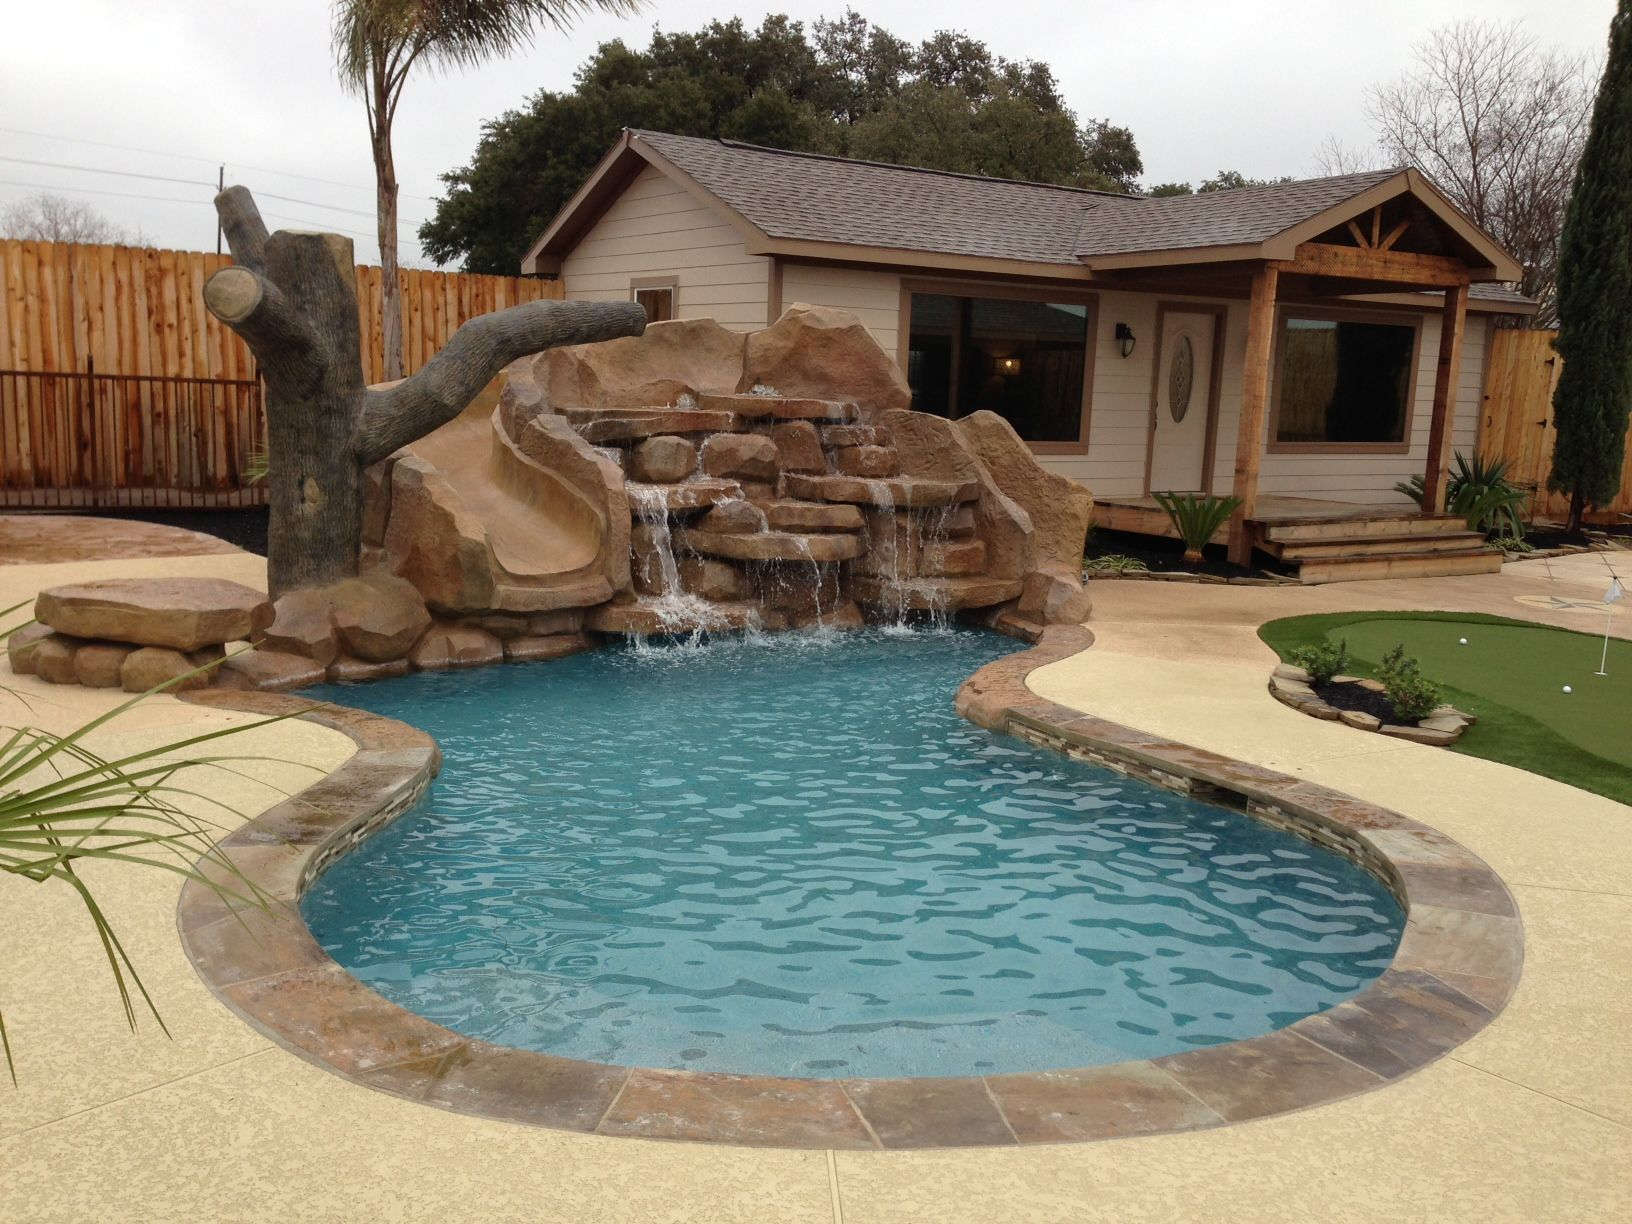 smallbackyardpools small swimming pool designs ideas for small home backyards for